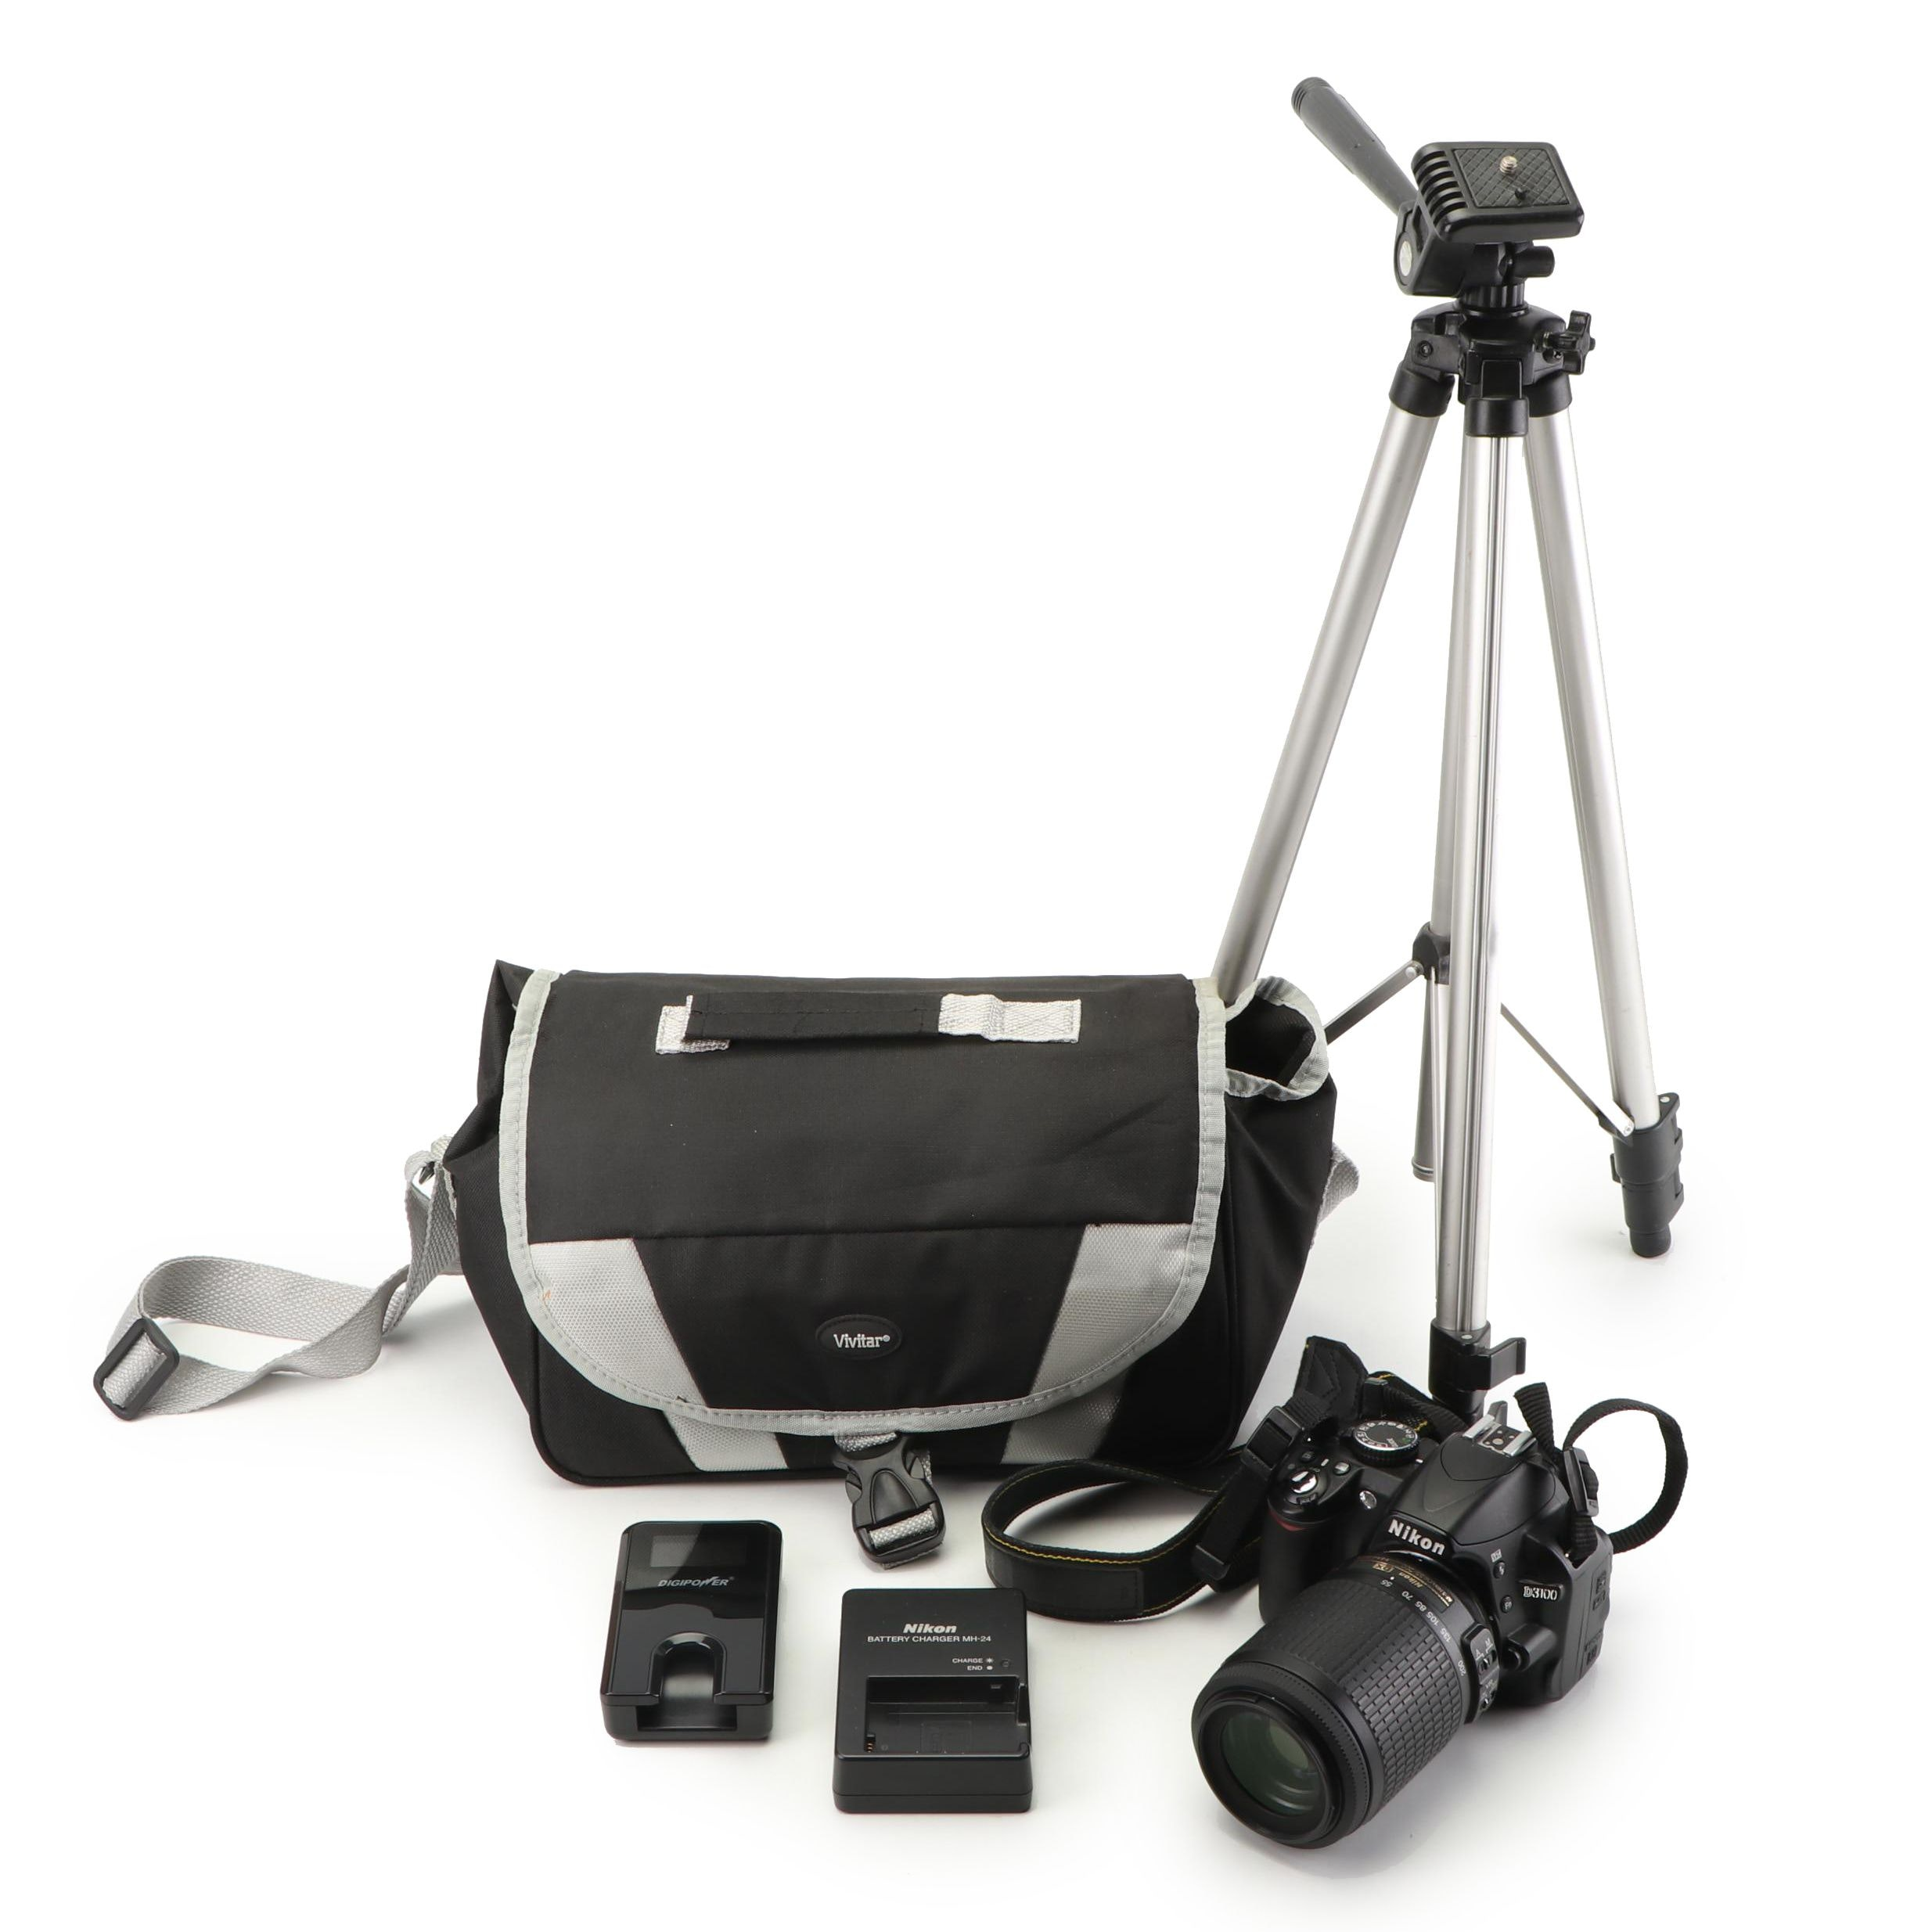 Nikon D3100 Camera with Accessories and Tripod